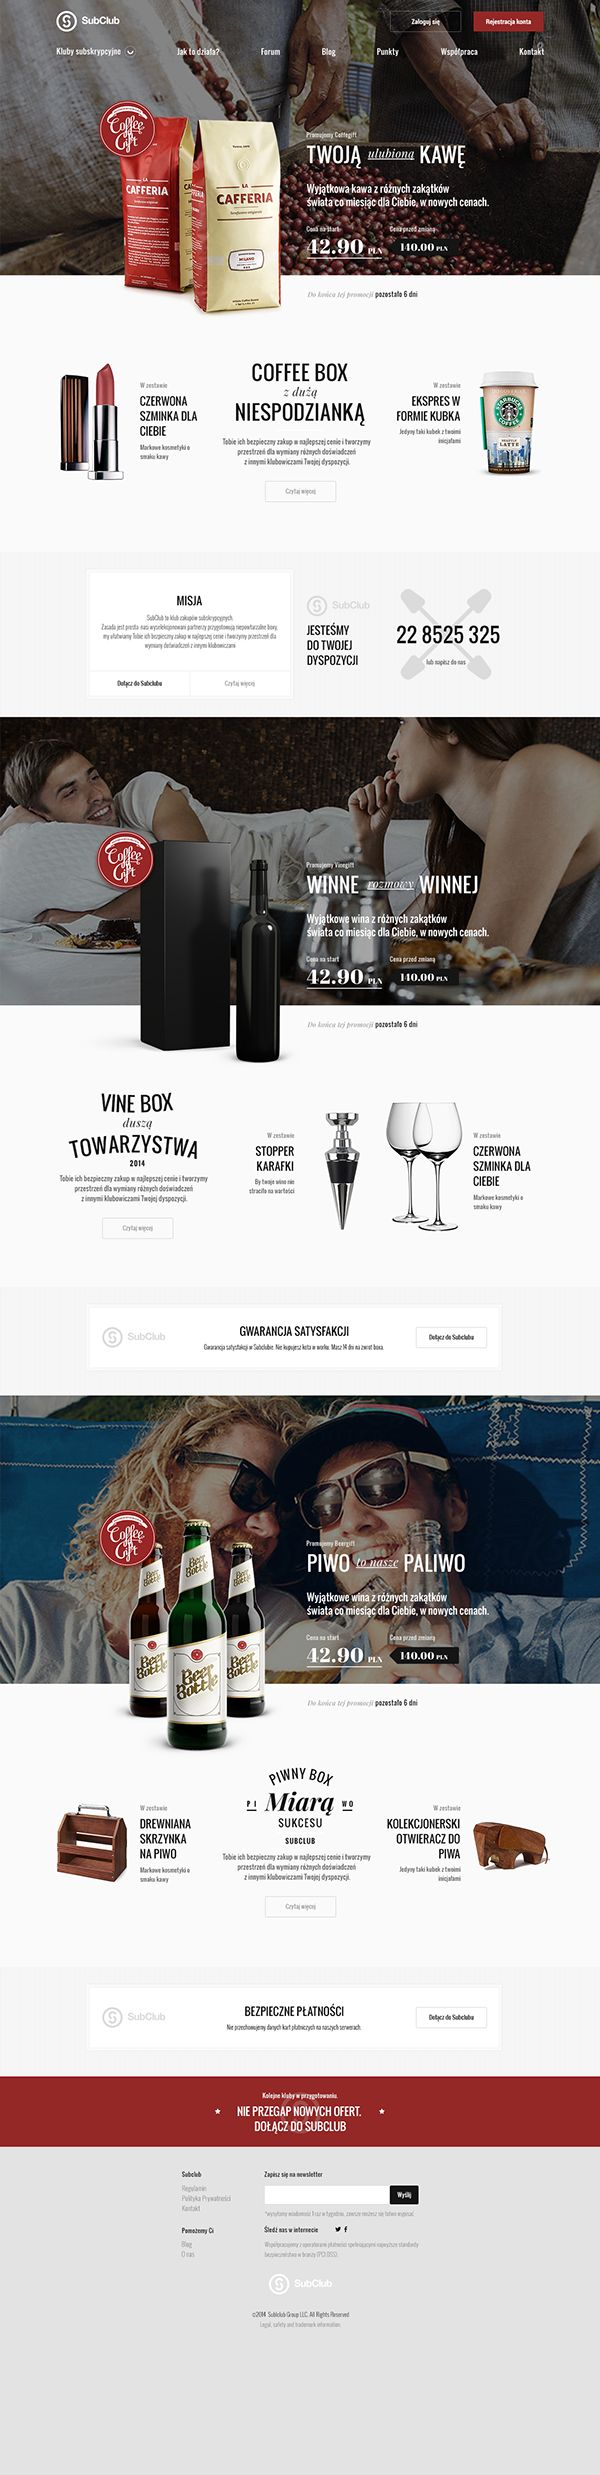 Unique Web Design, Subclub #WebDesign #Design